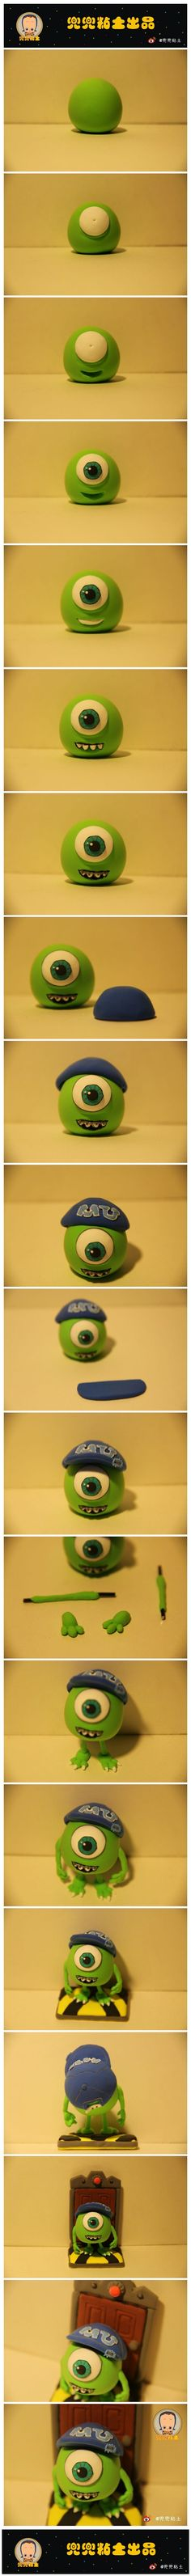 Polymer Clay Mike from Monsters Inc. 2